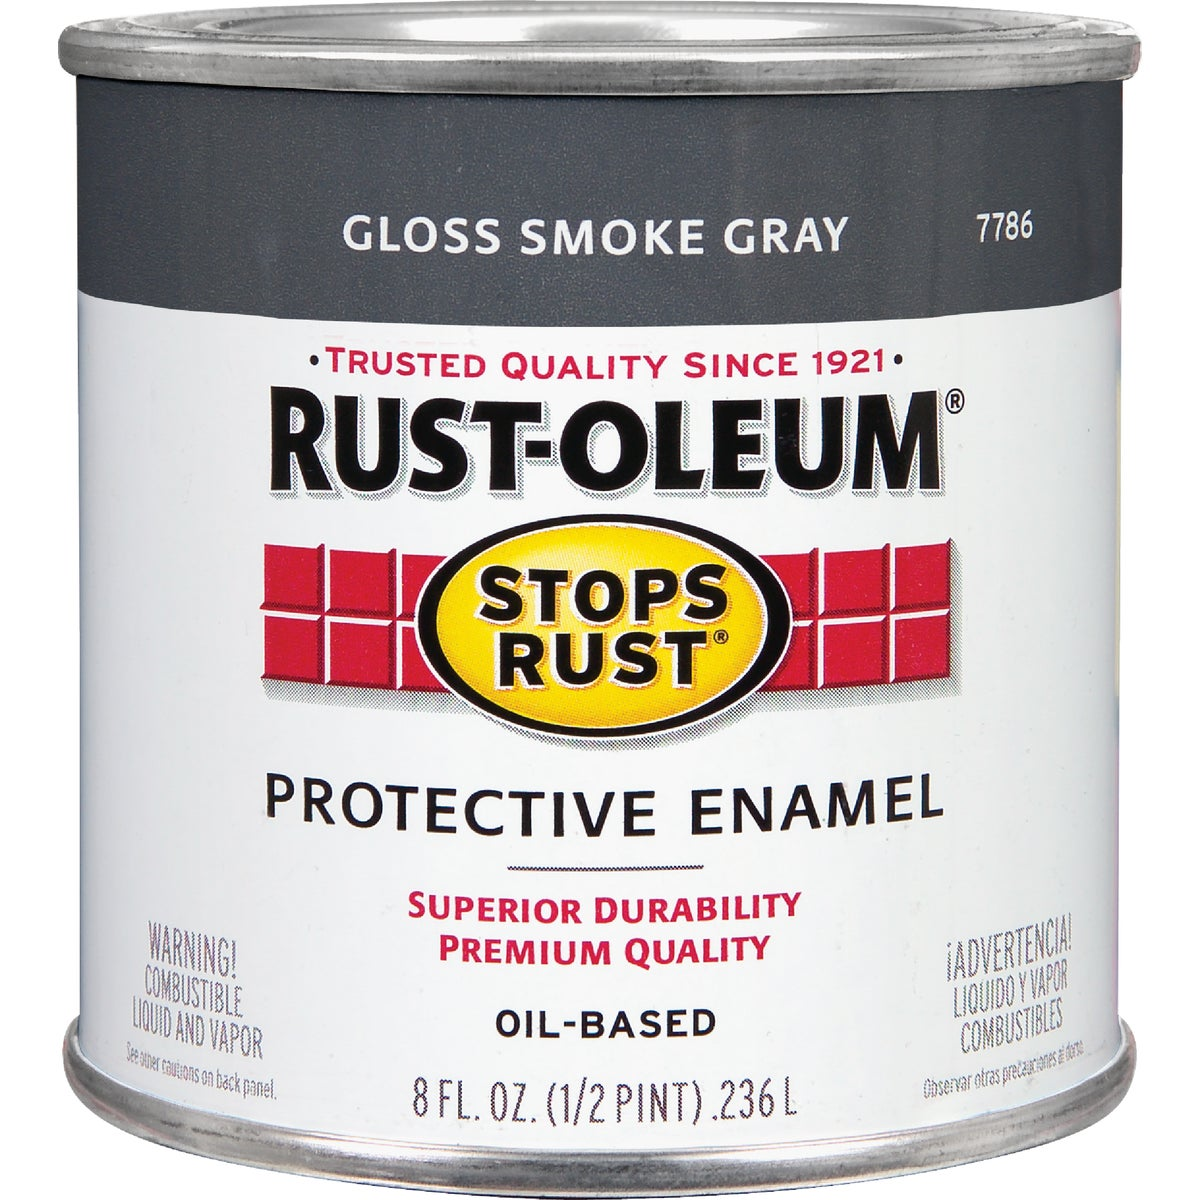 SMOKE GRAY ENAMEL - 7786-730 by Rustoleum